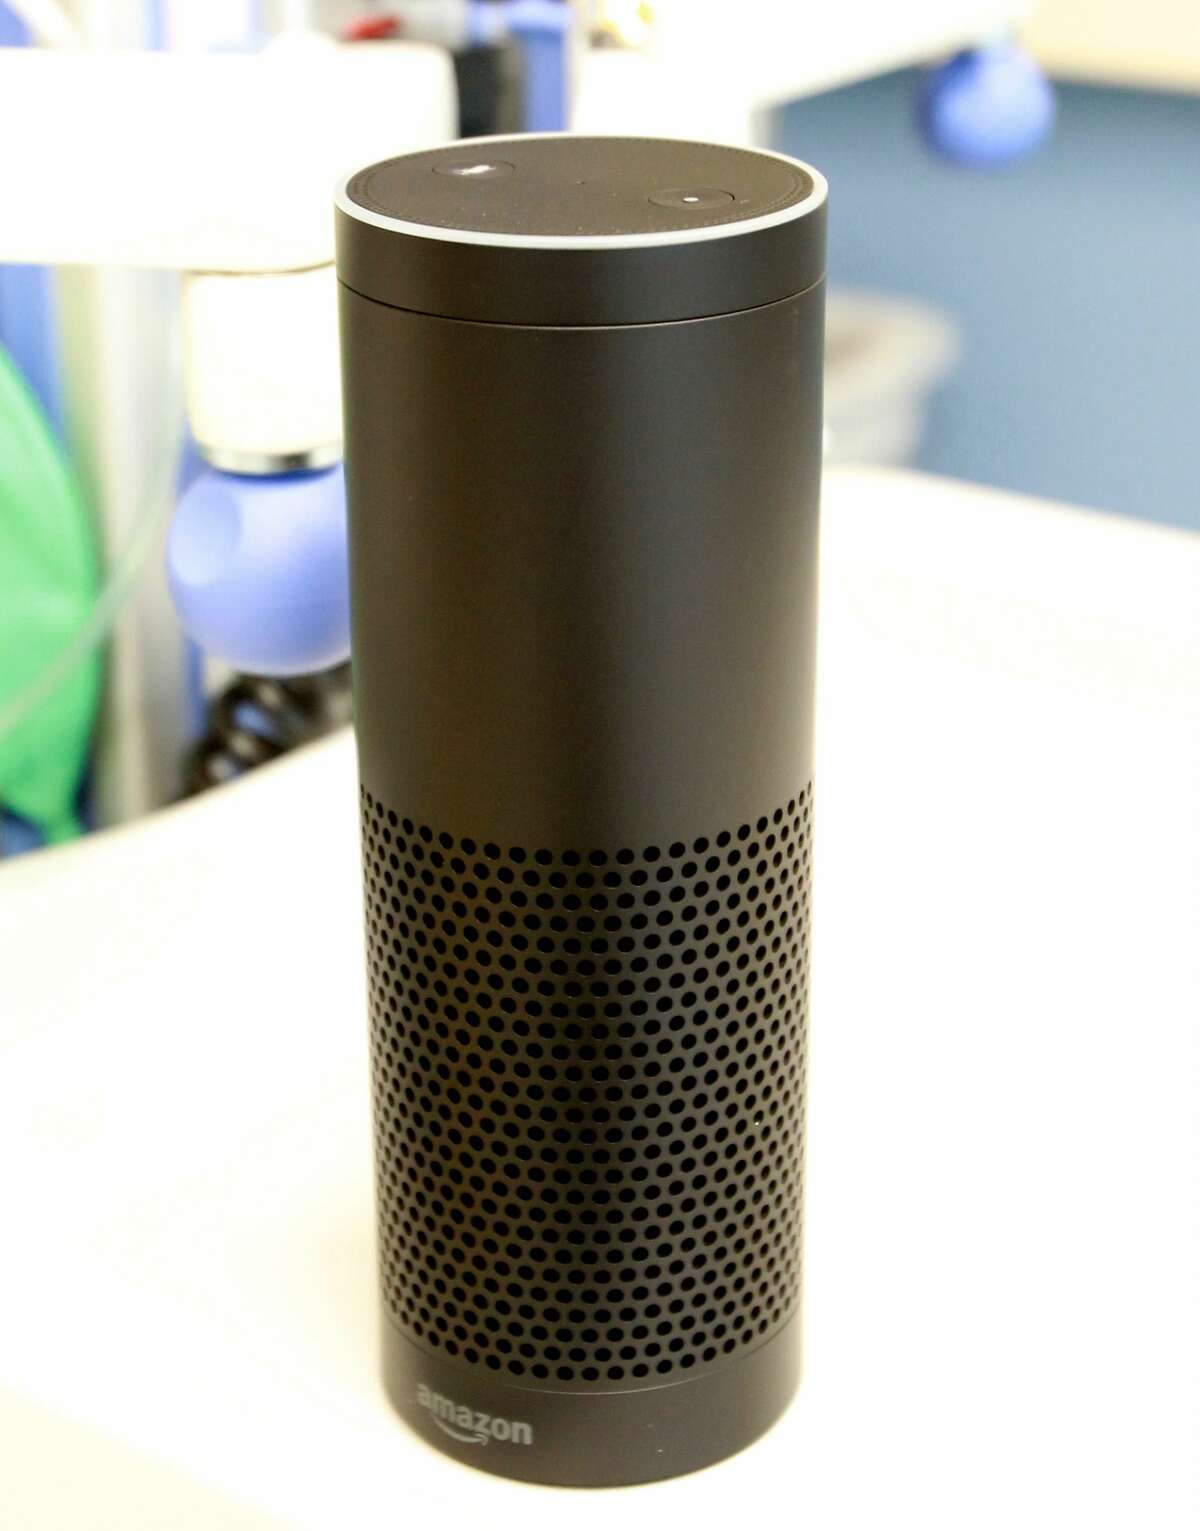 An Amazon Echo that used Amazon's Alexa voice recognition technology.